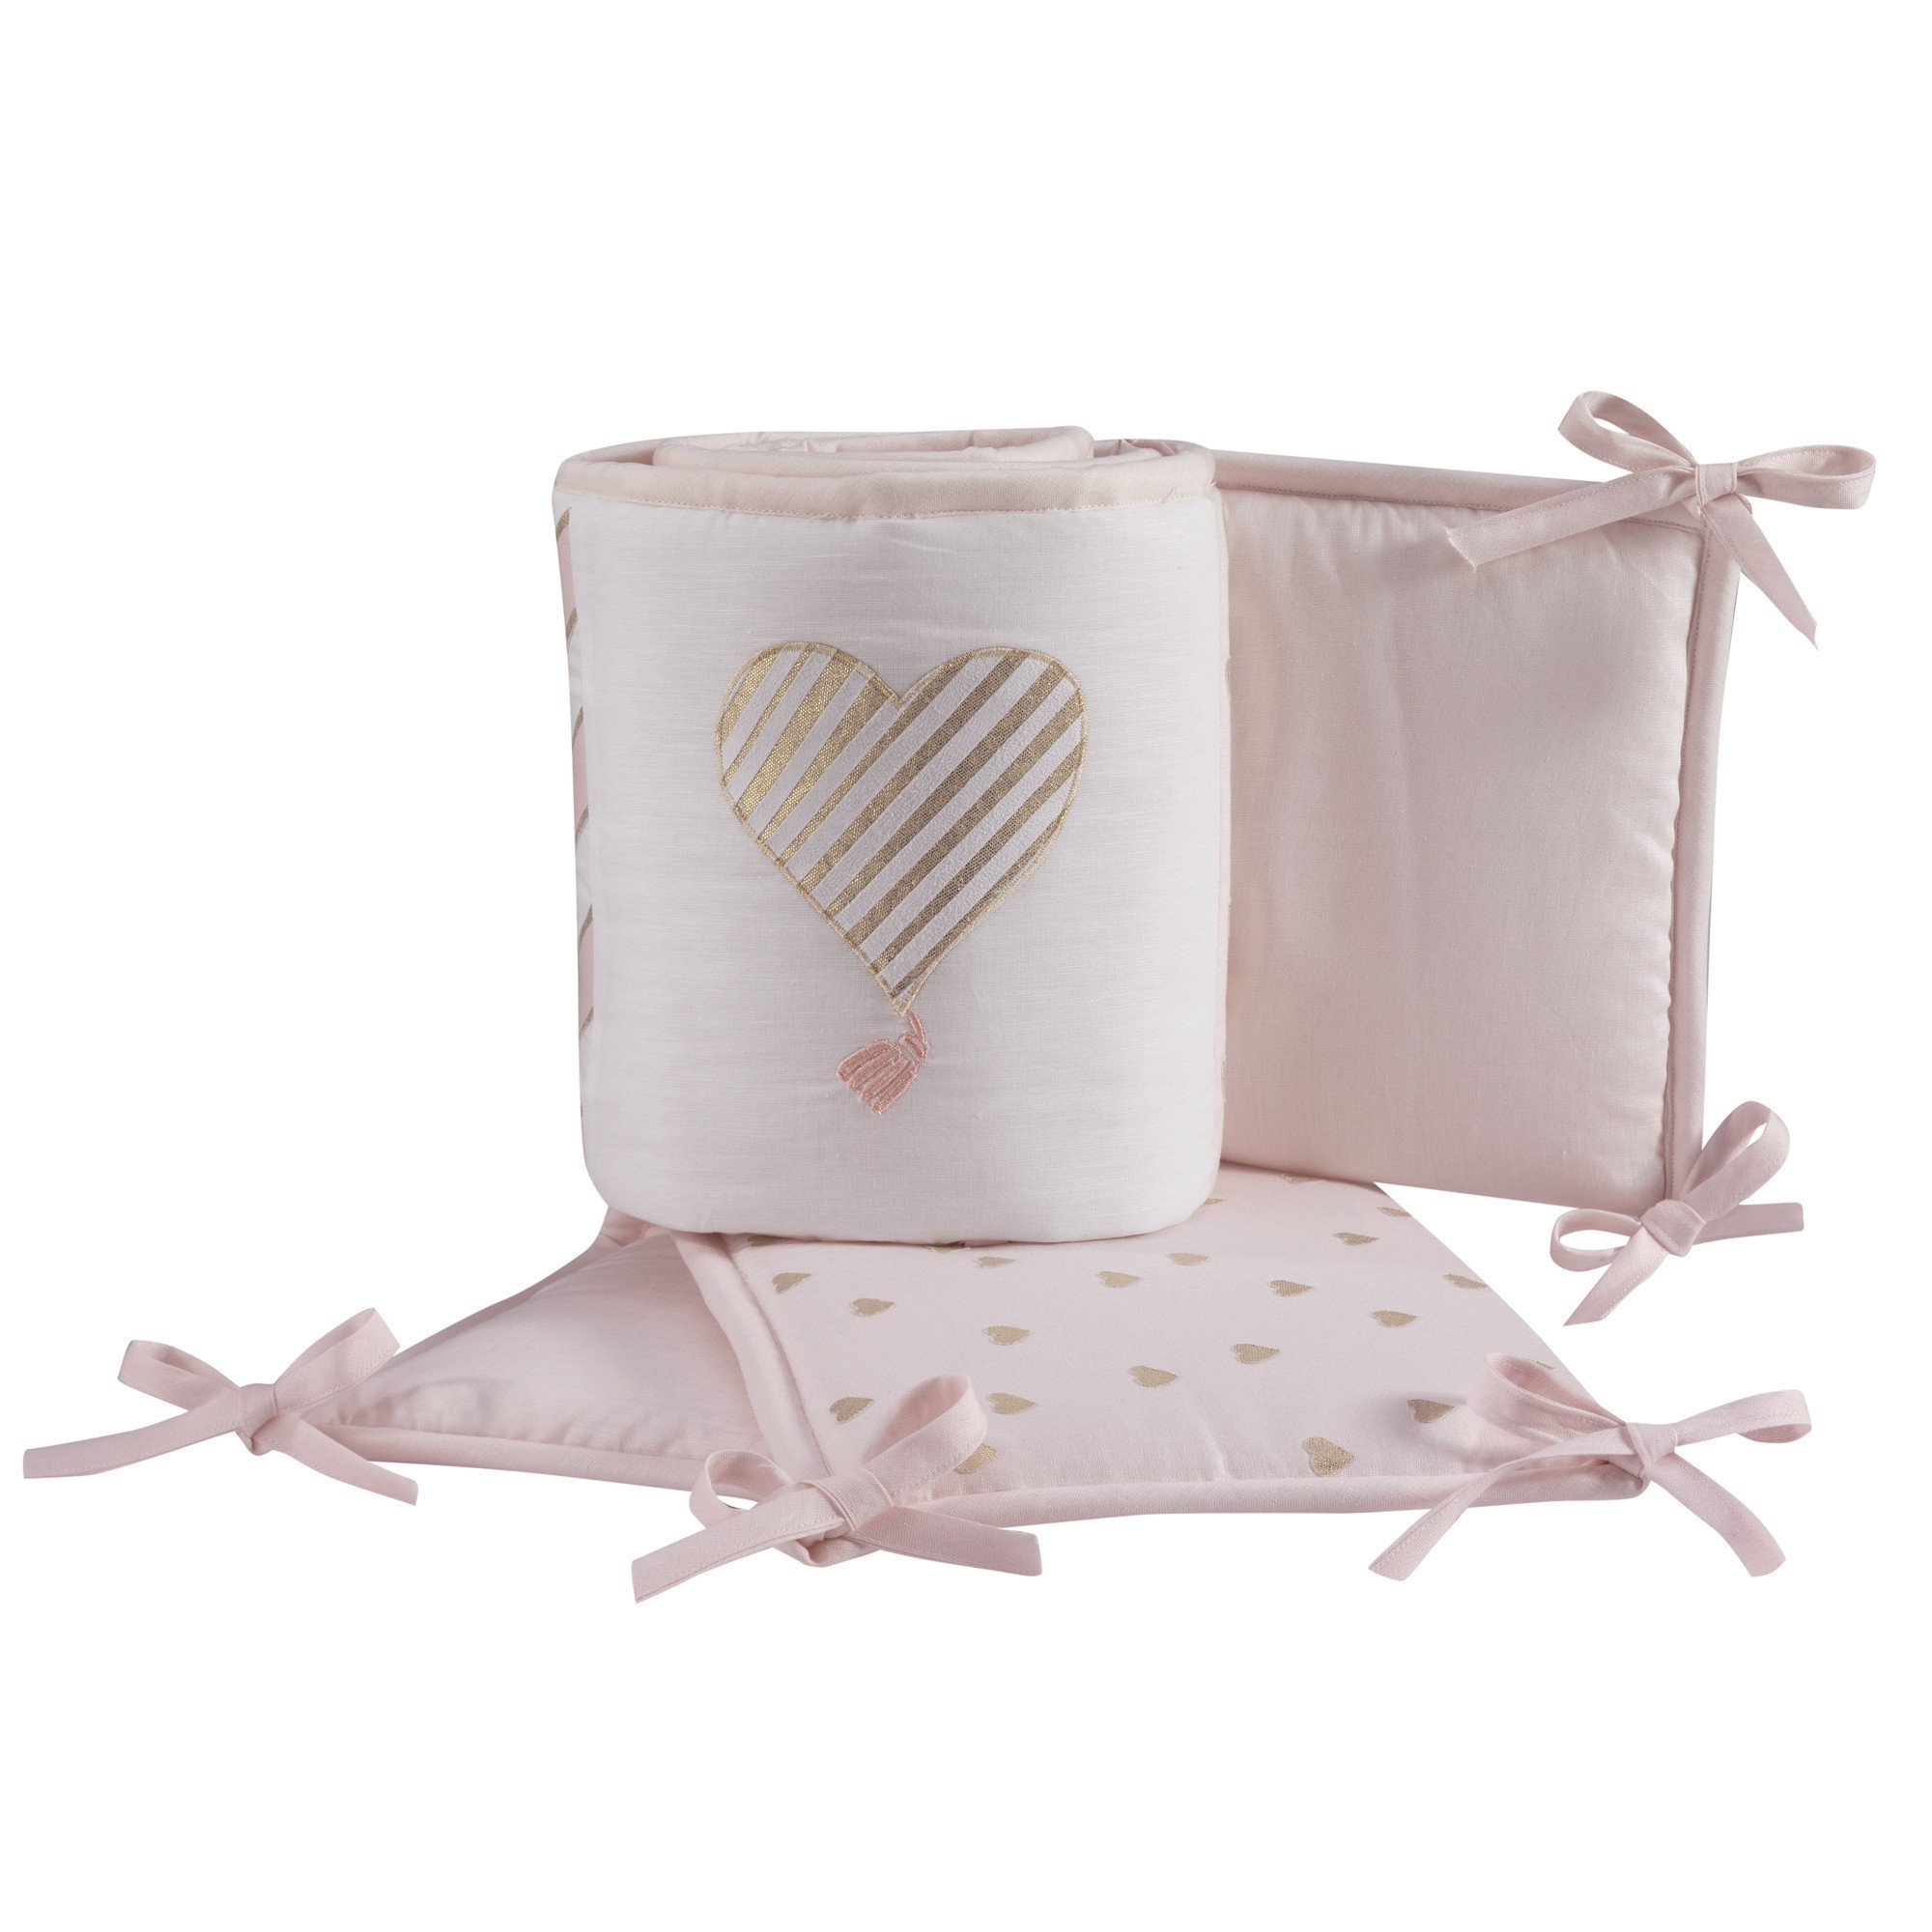 Lambs & Ivy Baby Love 4-Piece Crib Bumper Pads- Pink/Gold/White with Hearts by Lambs & Ivy